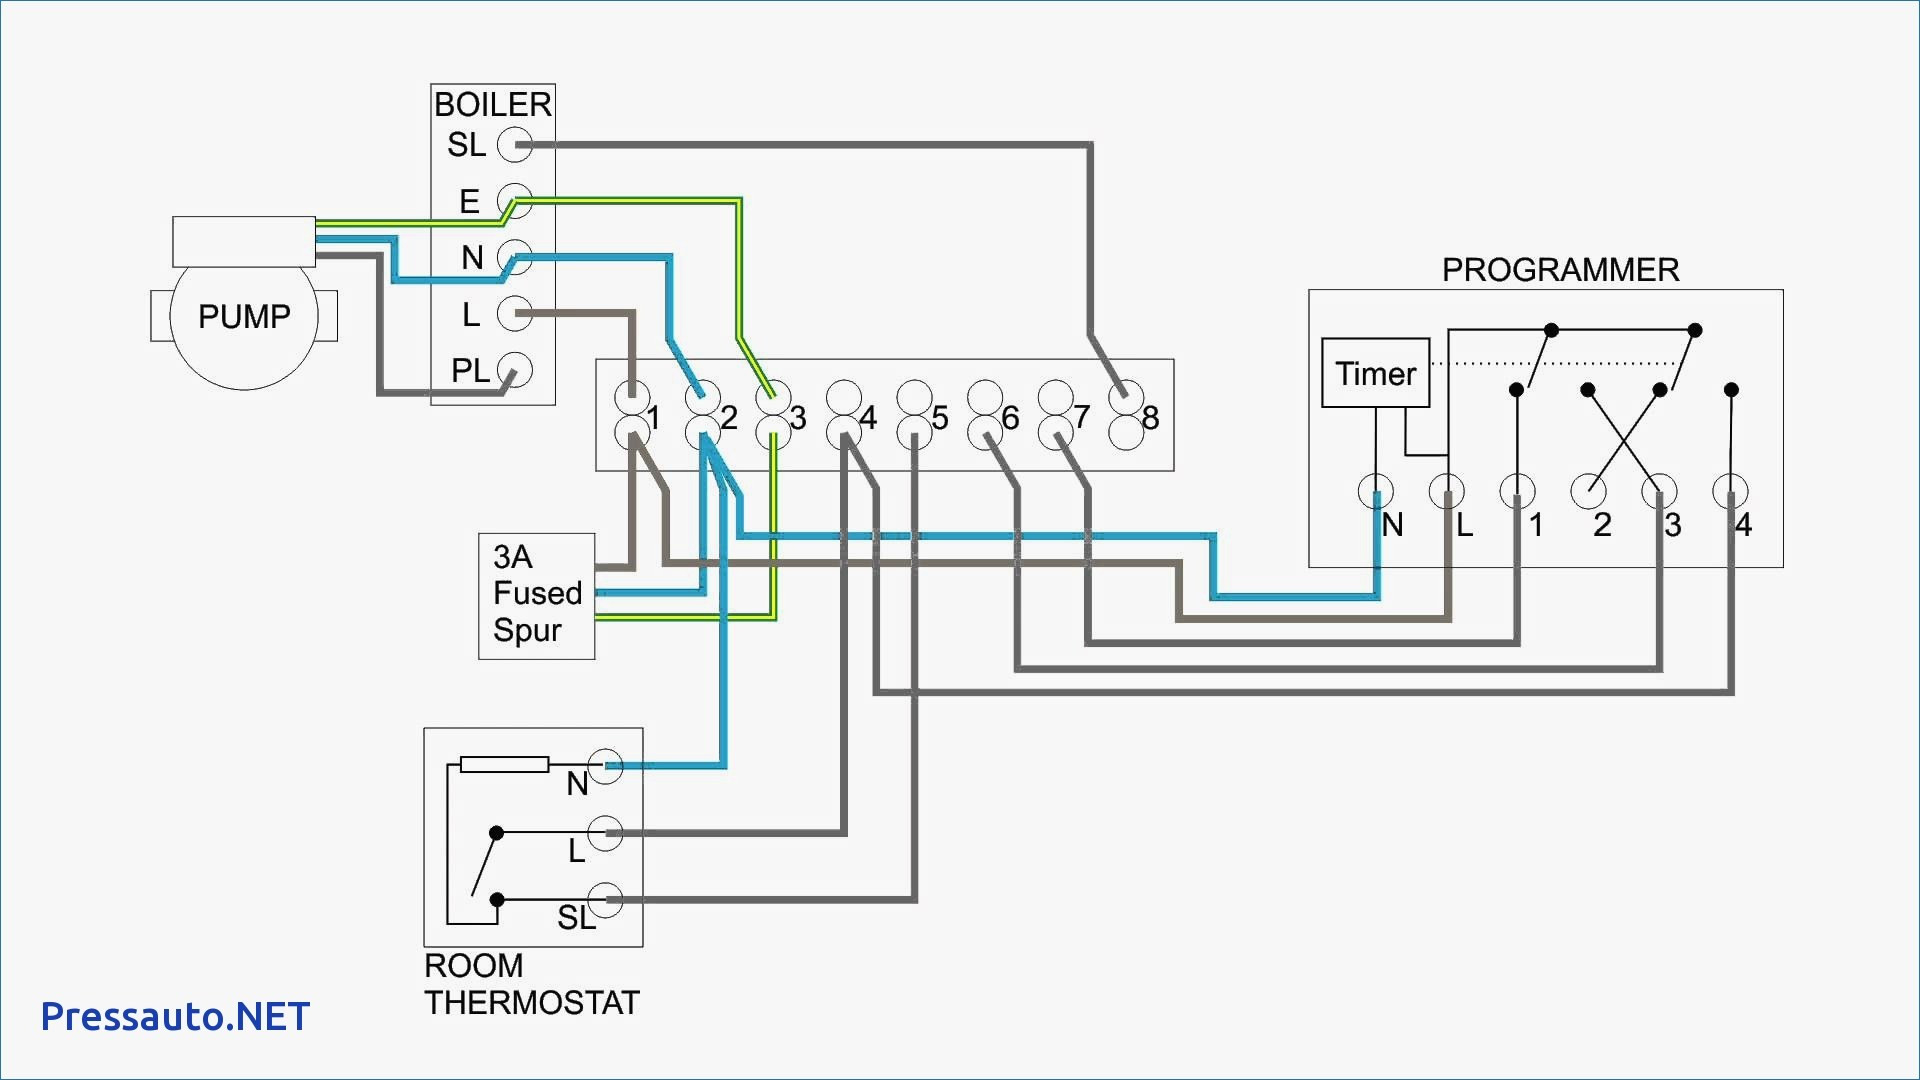 chromalox heater wiring diagram Collection-Central Heating Thermostat Wiring Diagram Download Chromalox Fine 5-g